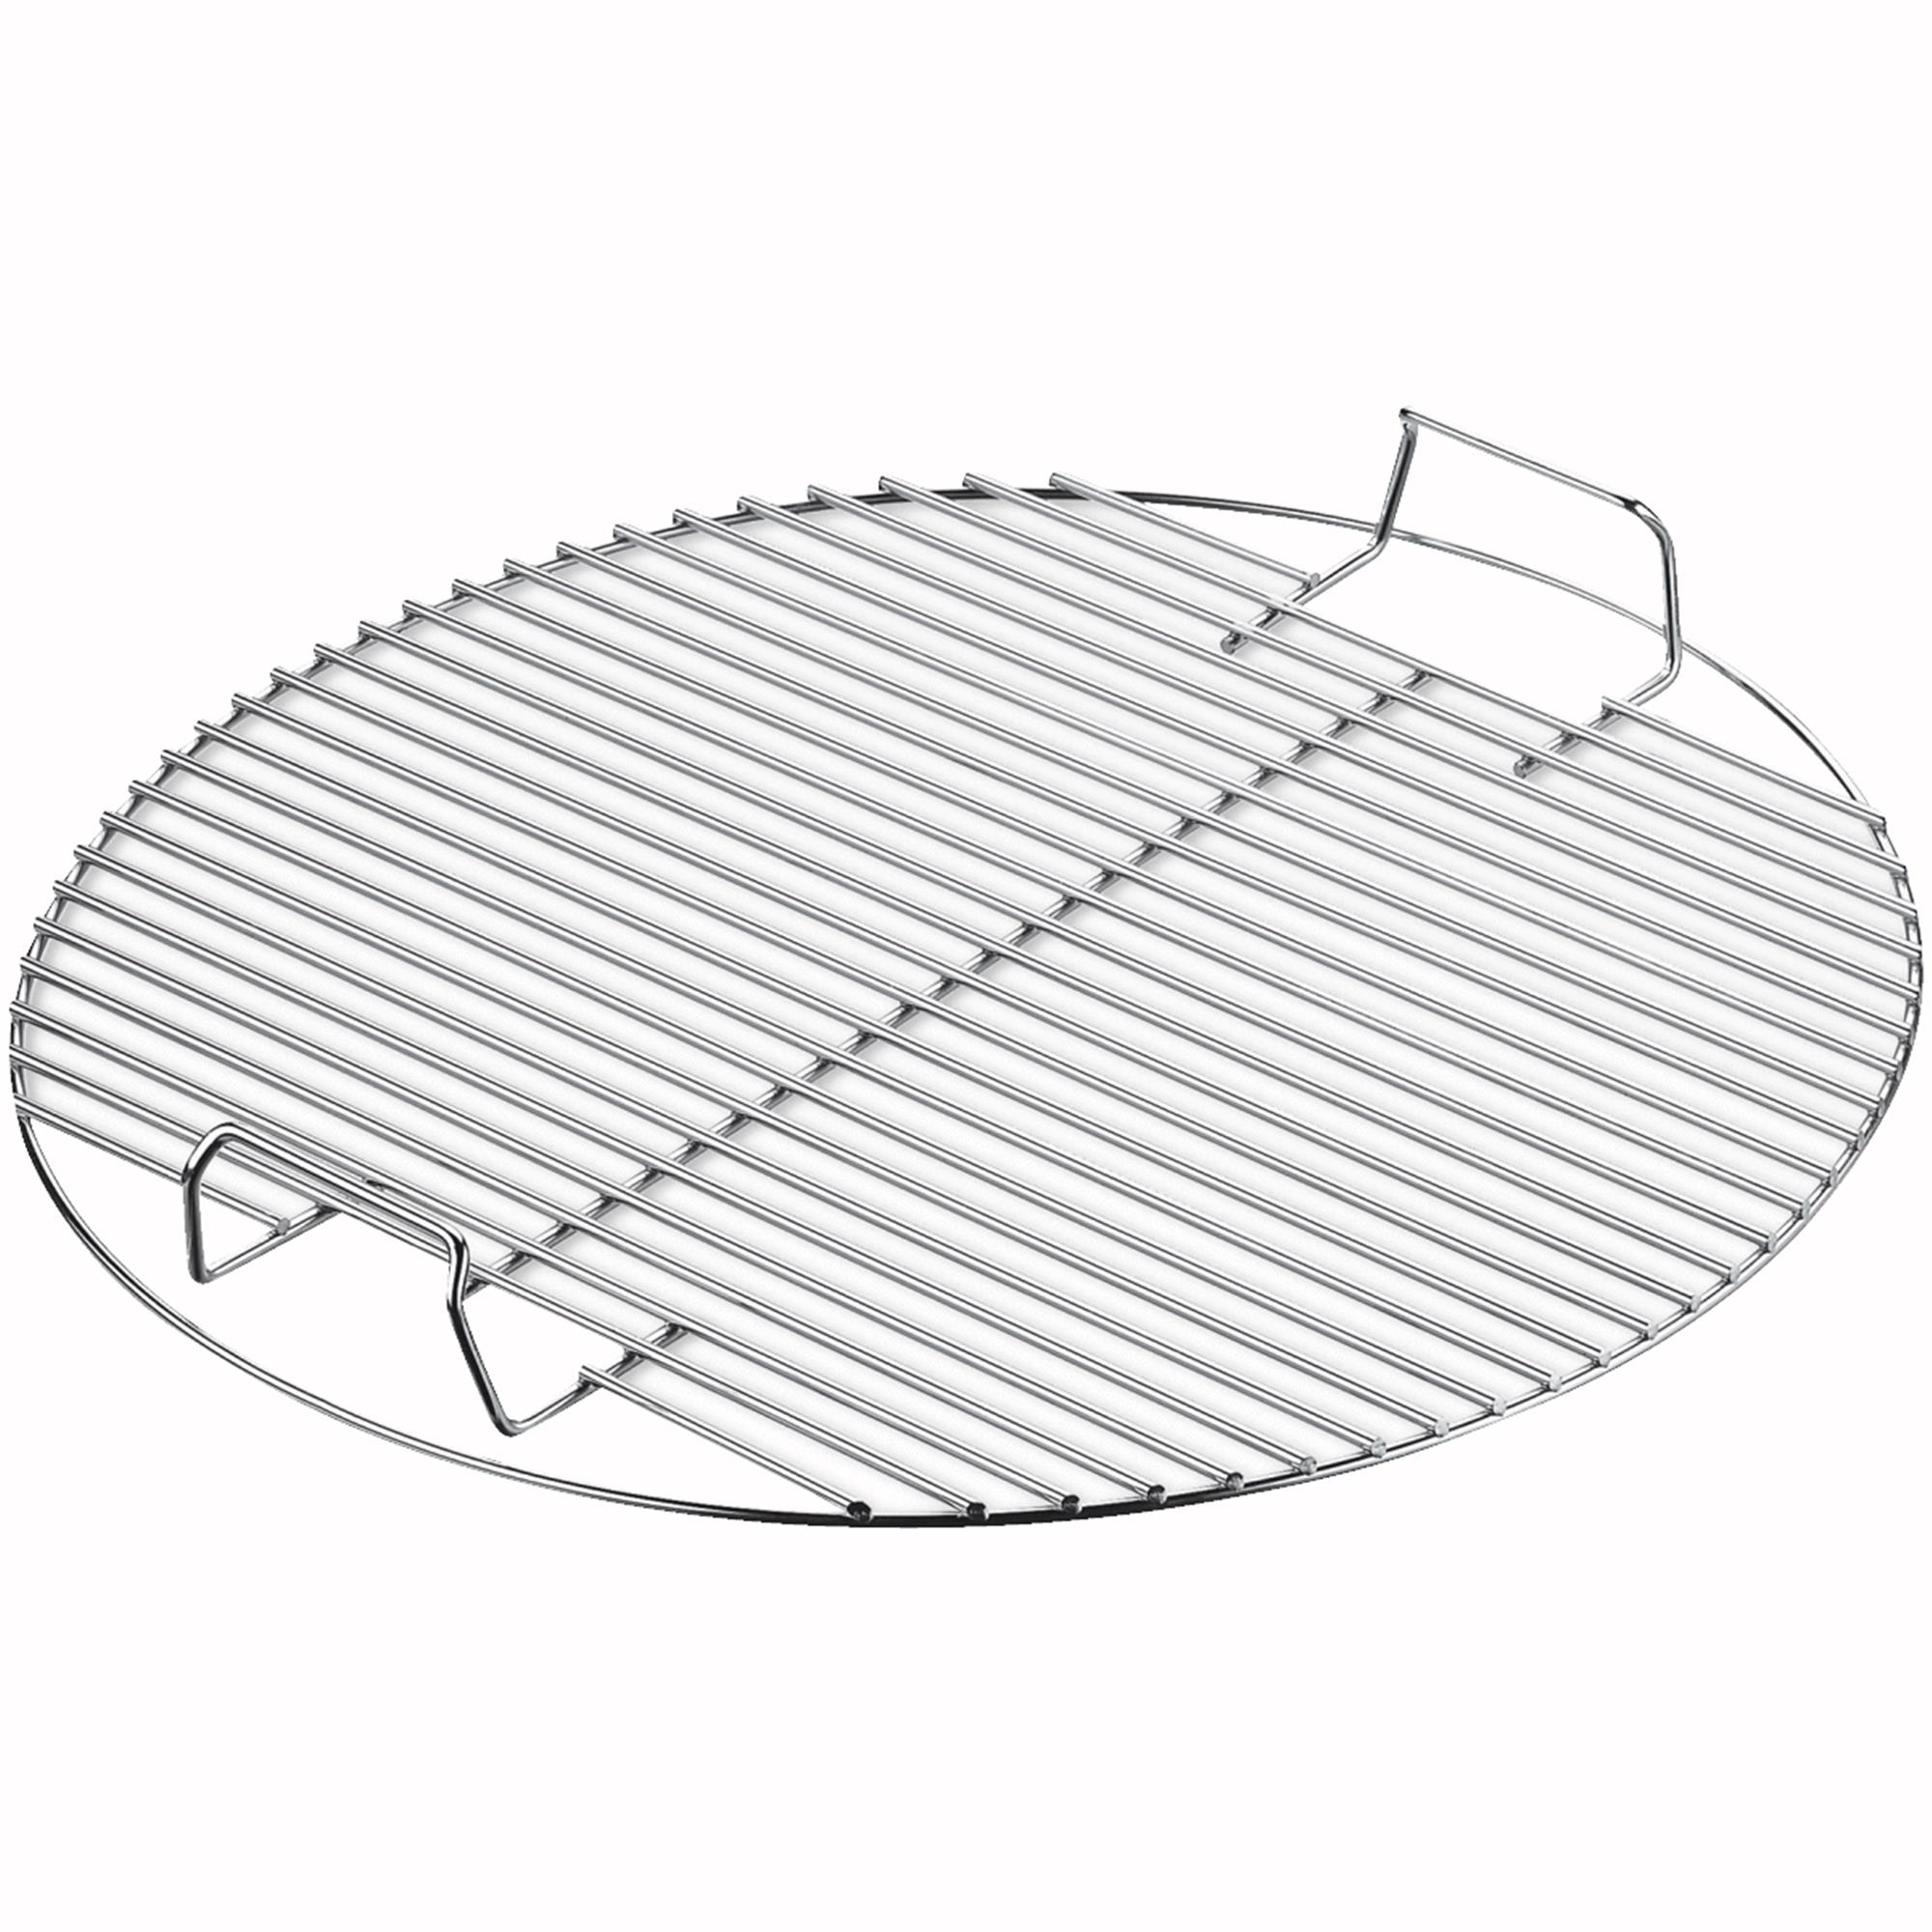 Weber Replacement Cooking Grate for 18-1/2 in. One-Touch Kettle, Smokey Mountain Cooker Smoker, & Bar-B-Kettle Charcoal Grill